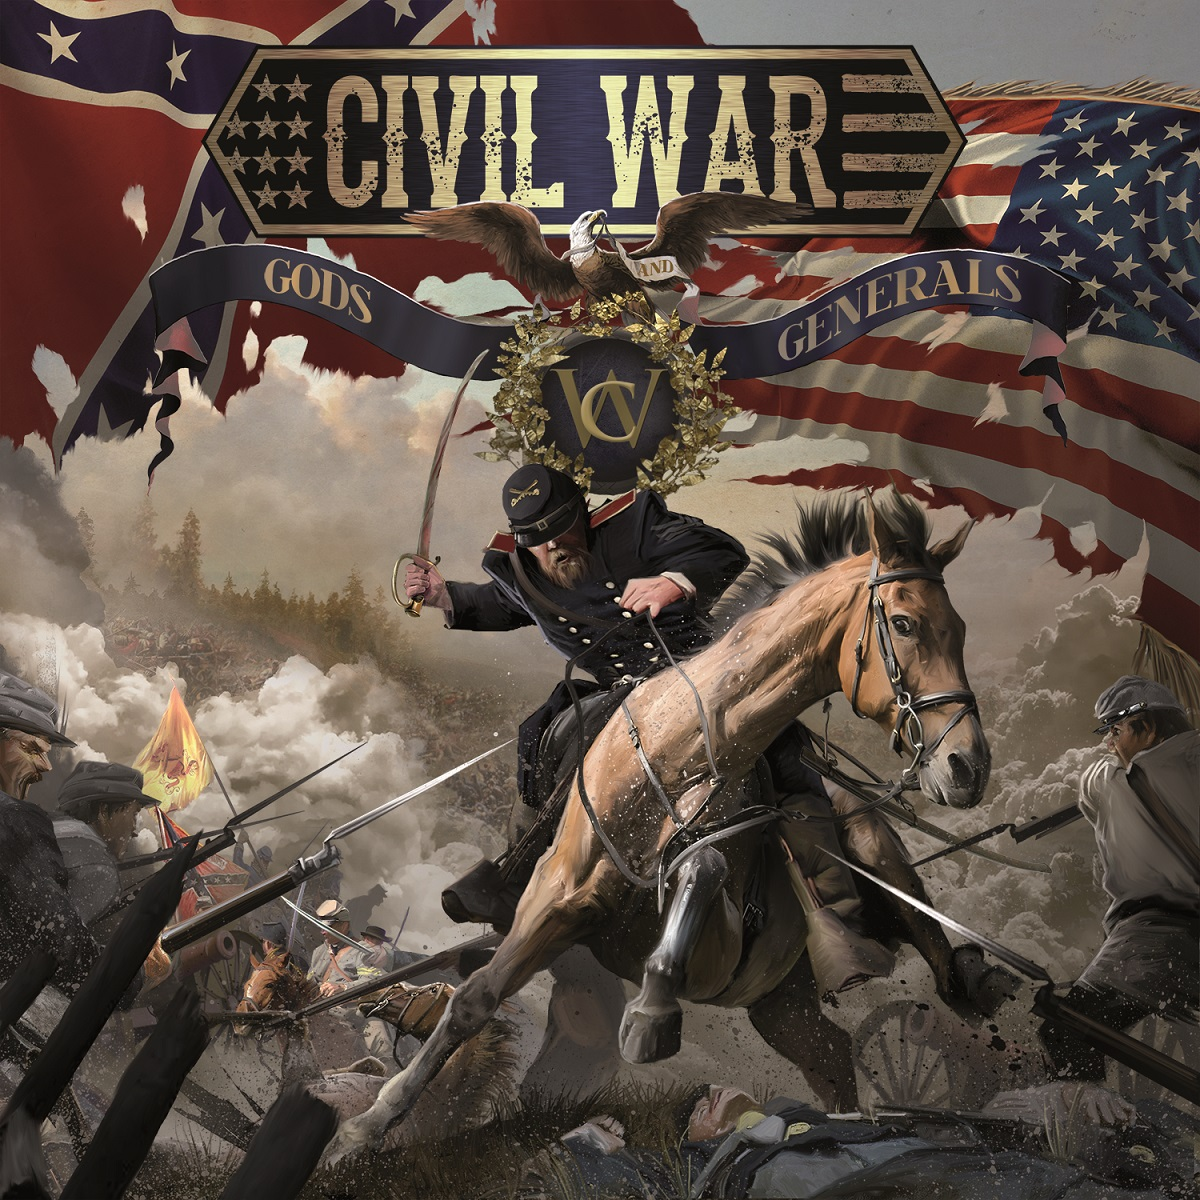 Civil War – Gods and General Review